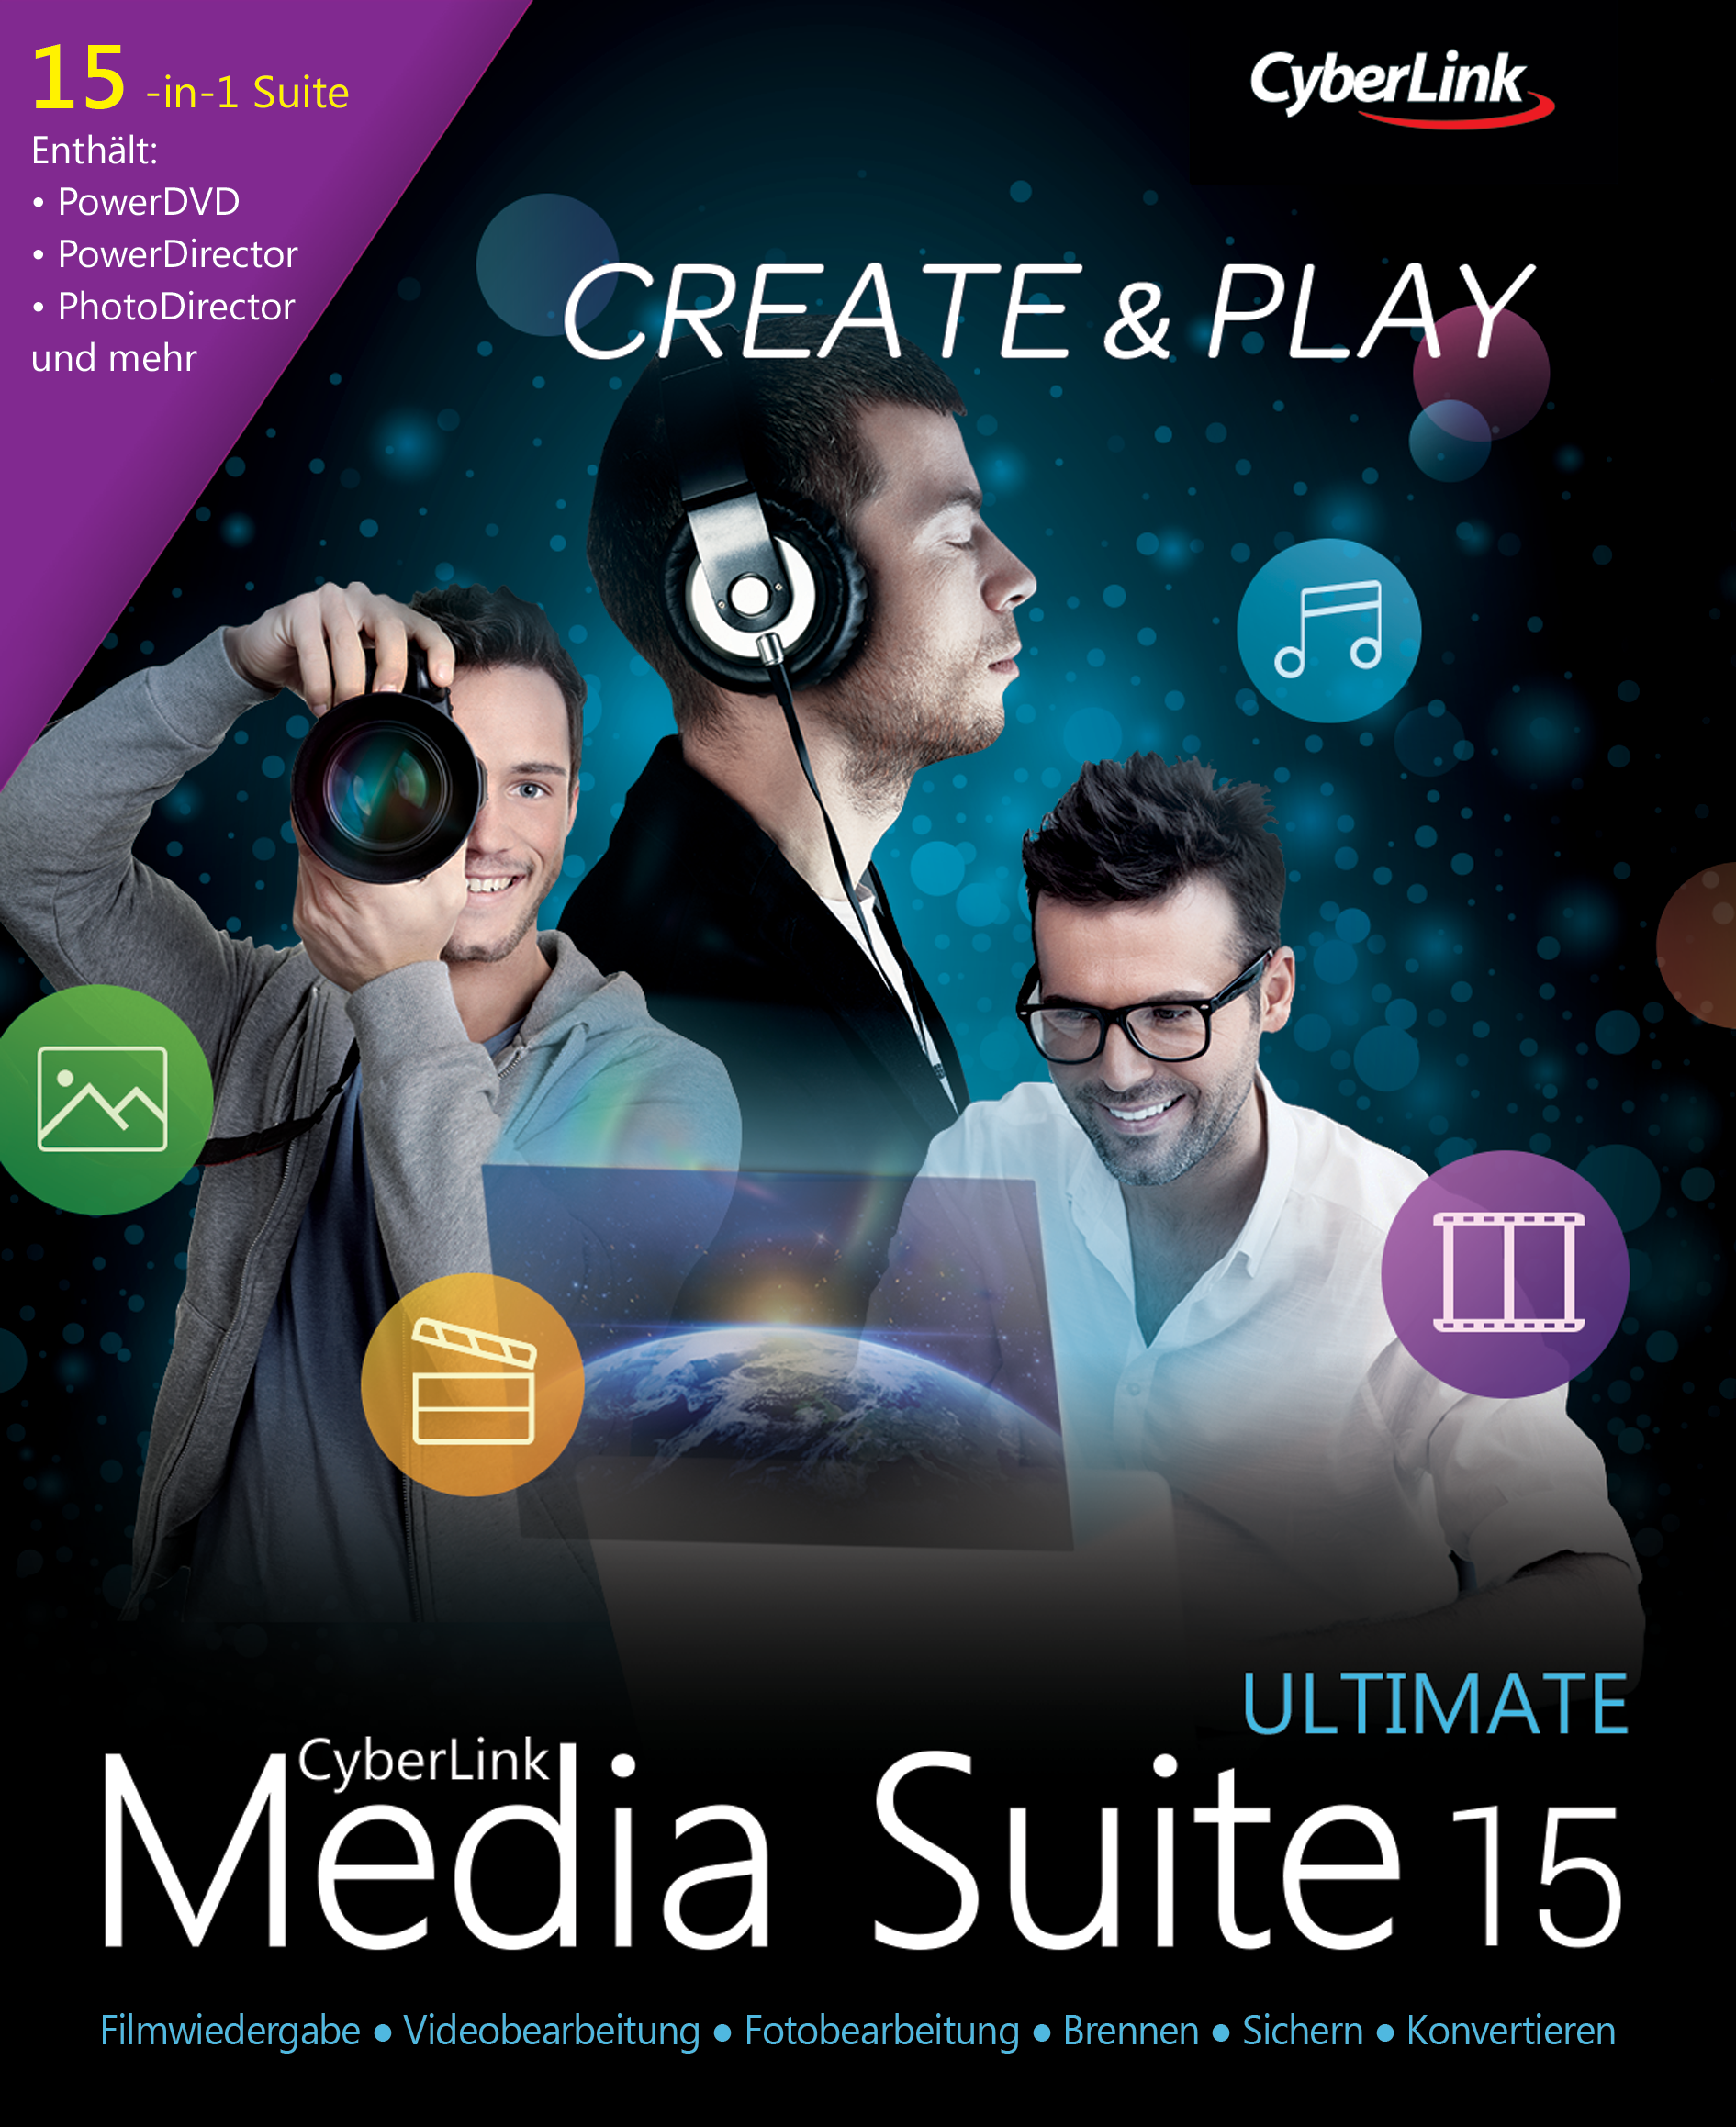 CyberLink Media Suite 15 Ultimate [Download]